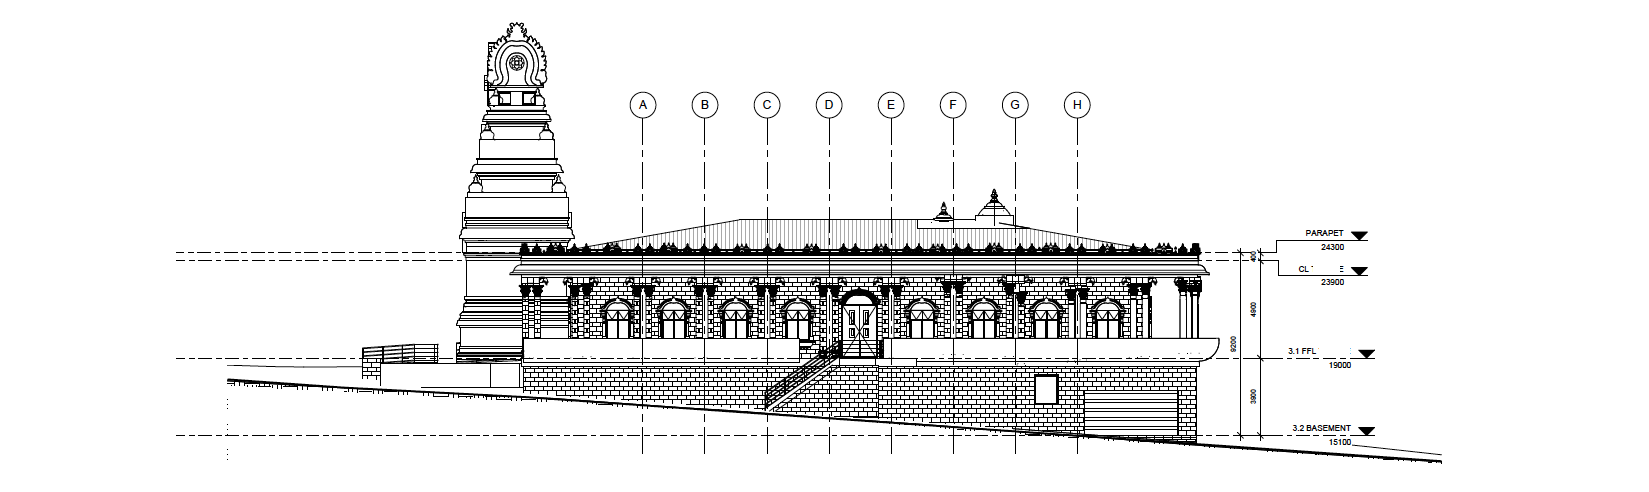 Concept Plan for the Precinct